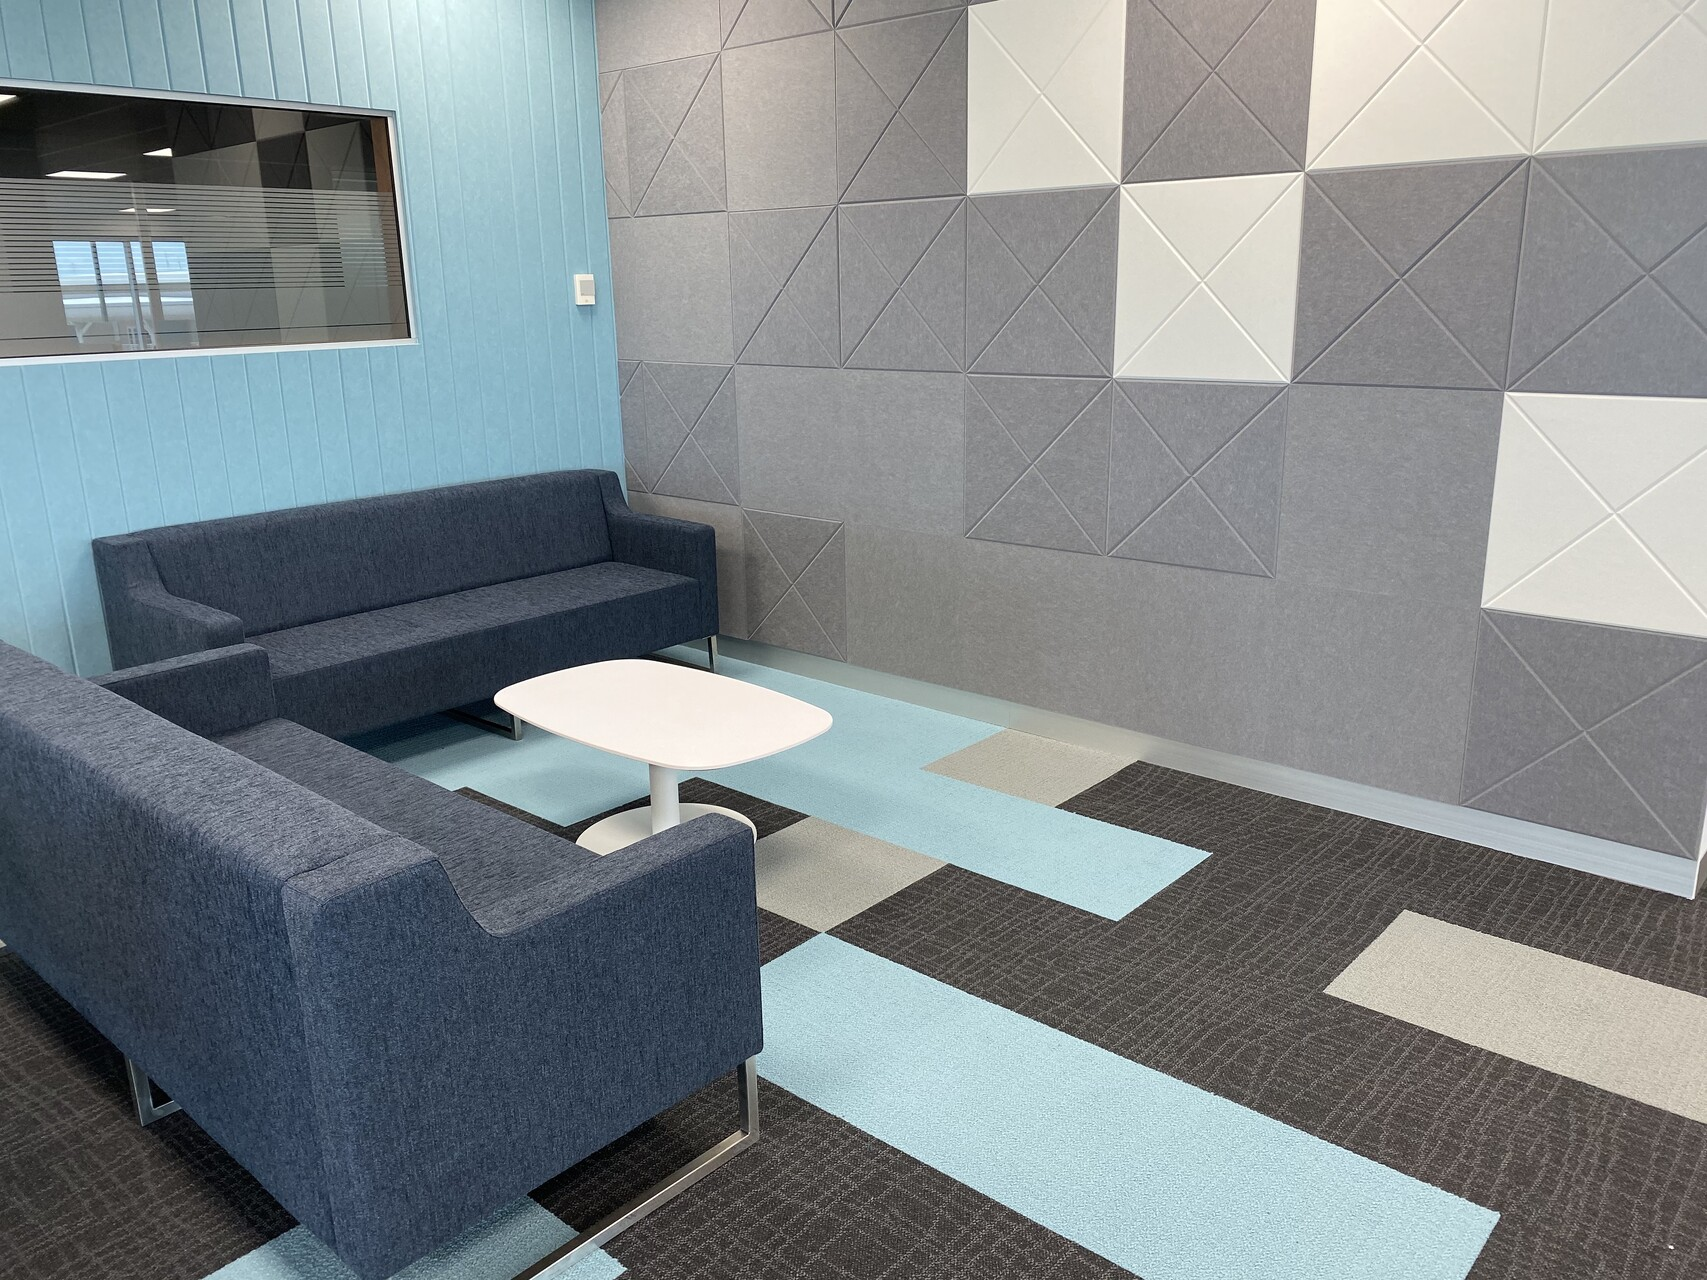 IMG_20191129_103027 lounge furniture office furniture darwin nt